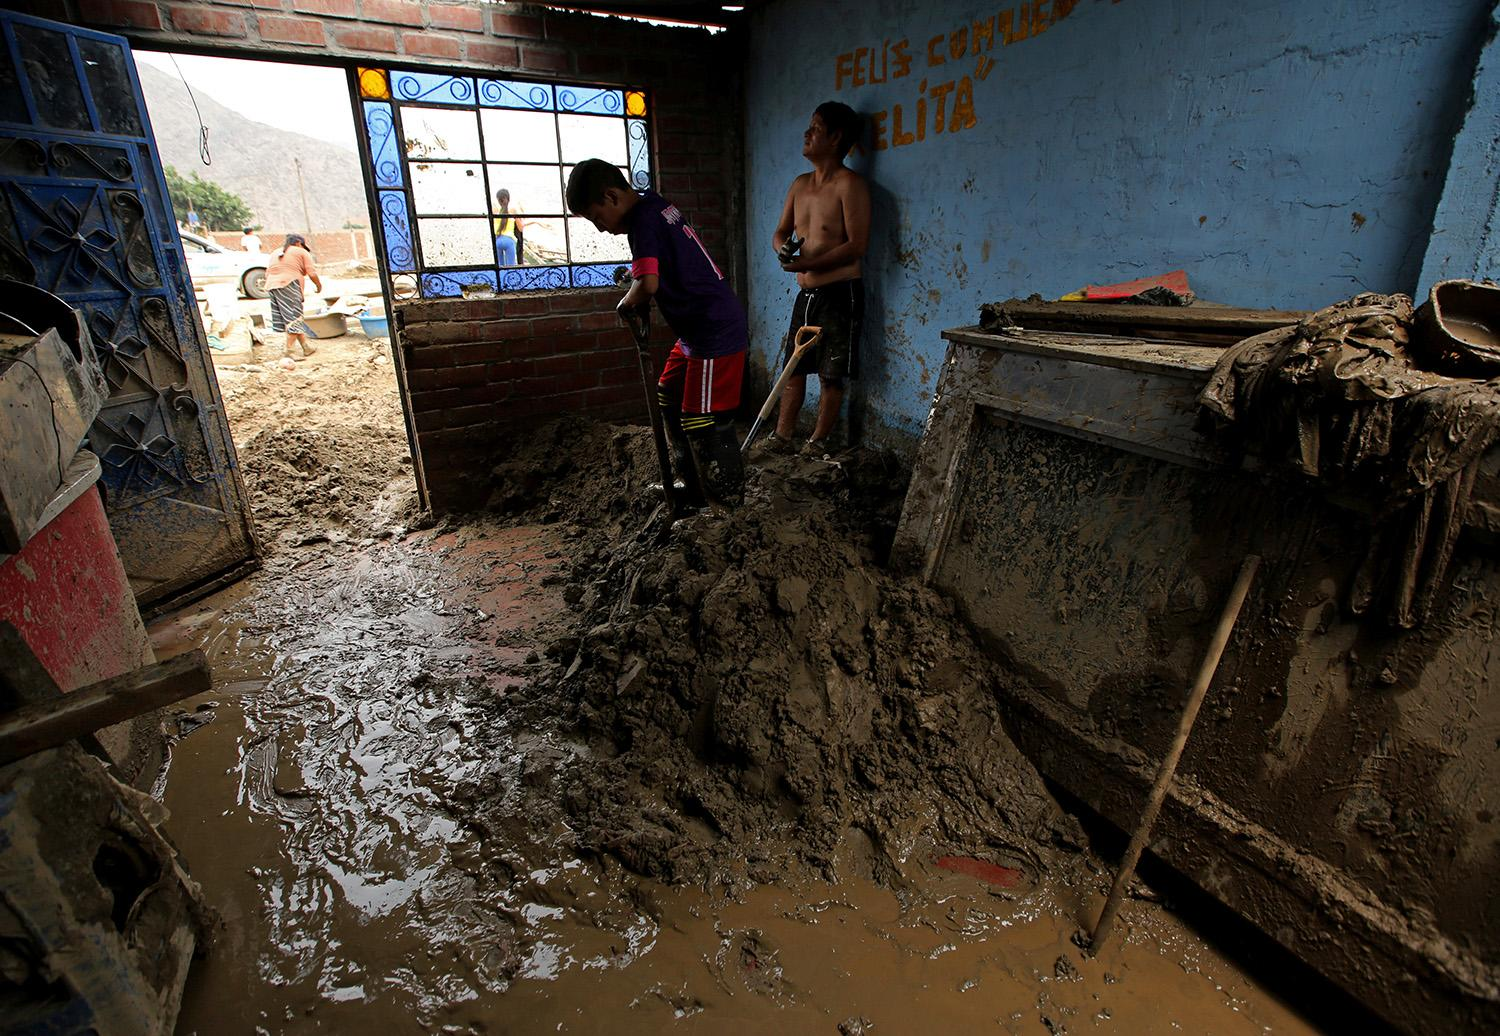 <p>Jairo Vargas, left, and Geremias Fuero clean their flooded home after rivers breached their banks due to torrential rains, causing flooding and widespread destruction in Huachipa, Lima,Peru, March 20, 2017. (Mariana Bazo/Reuters) </p>